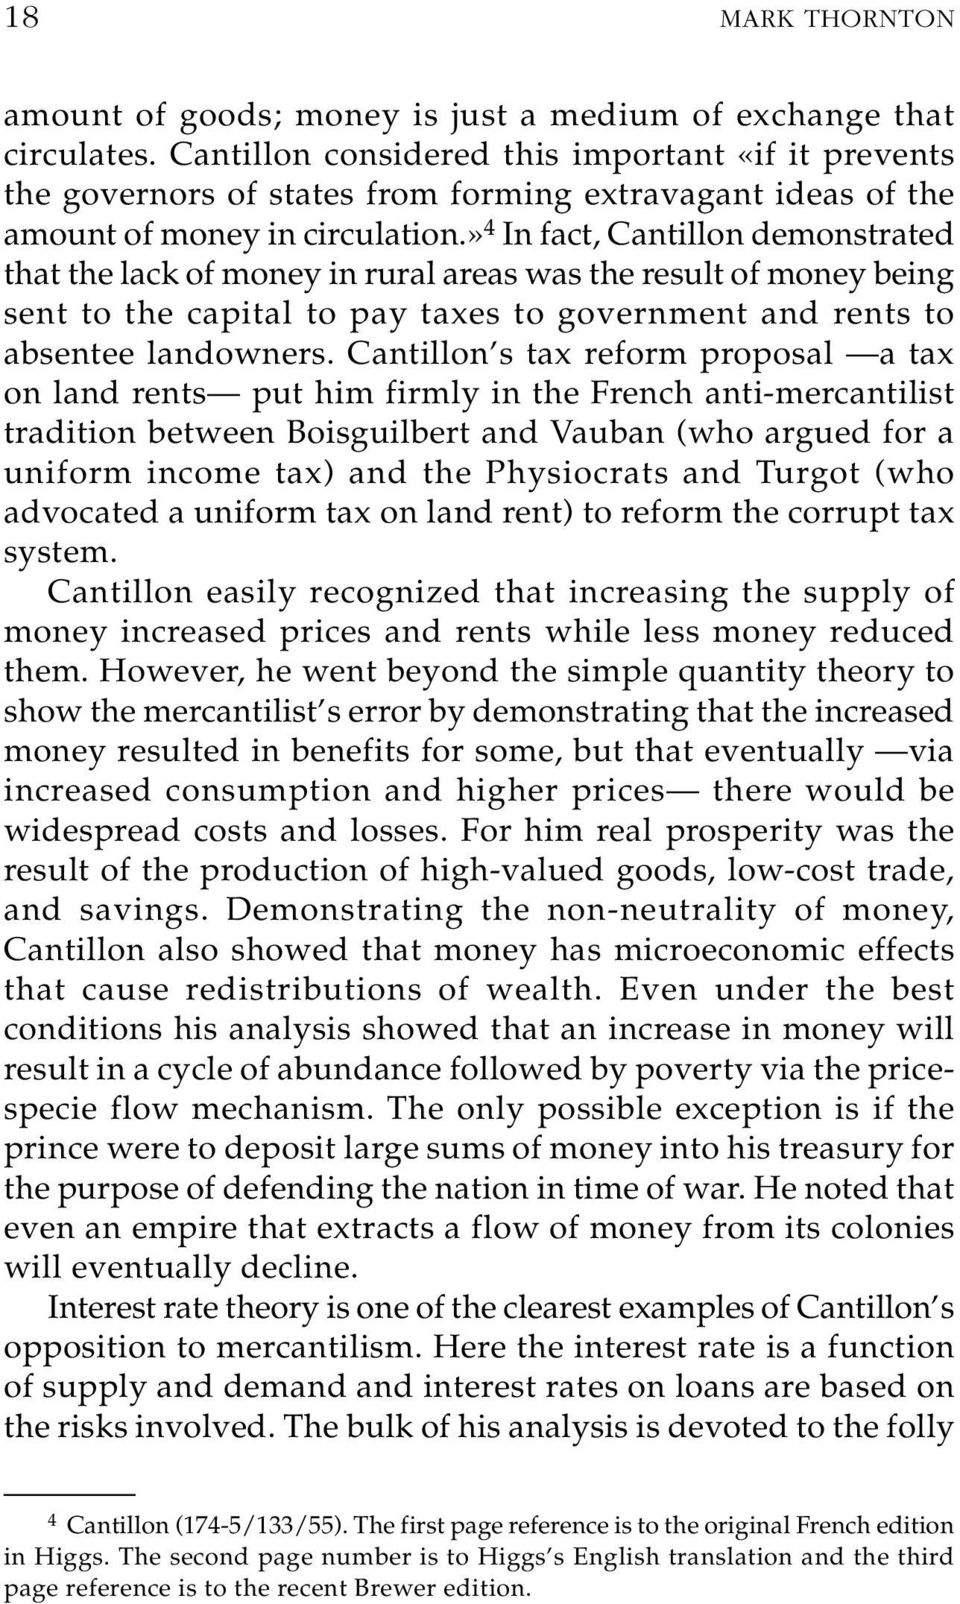 » 4 In fact, Cantillon demonstrated that the lack of money in rural areas was the result of money being sent to the capital to pay taxes to government and rents to absentee landowners.